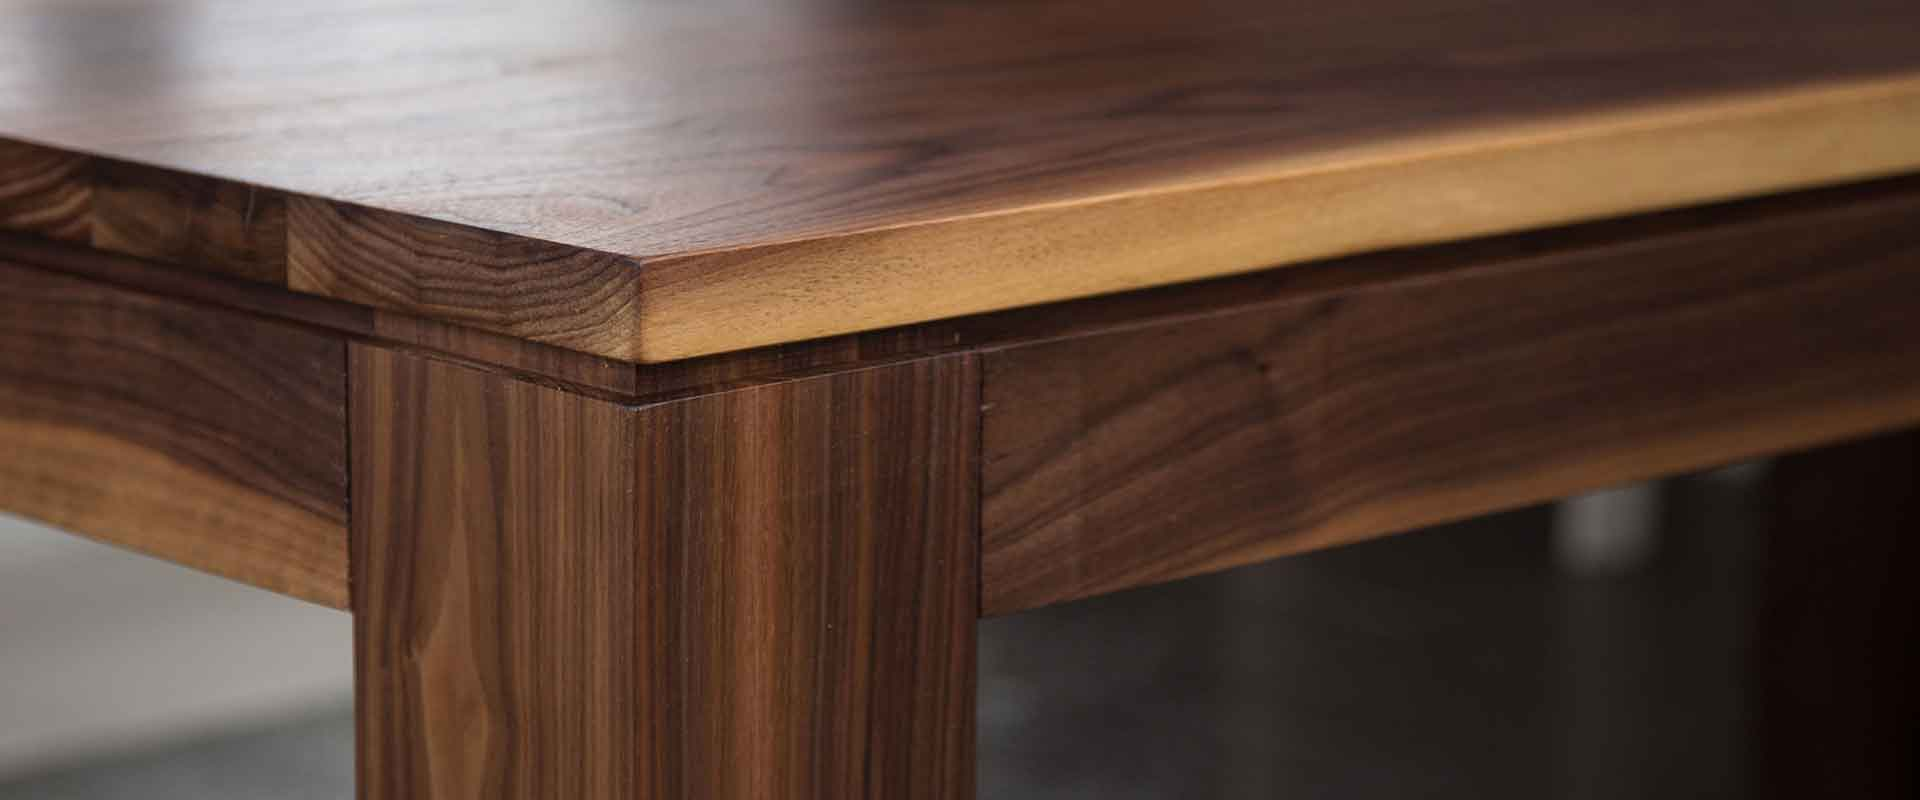 Solid-wood-table